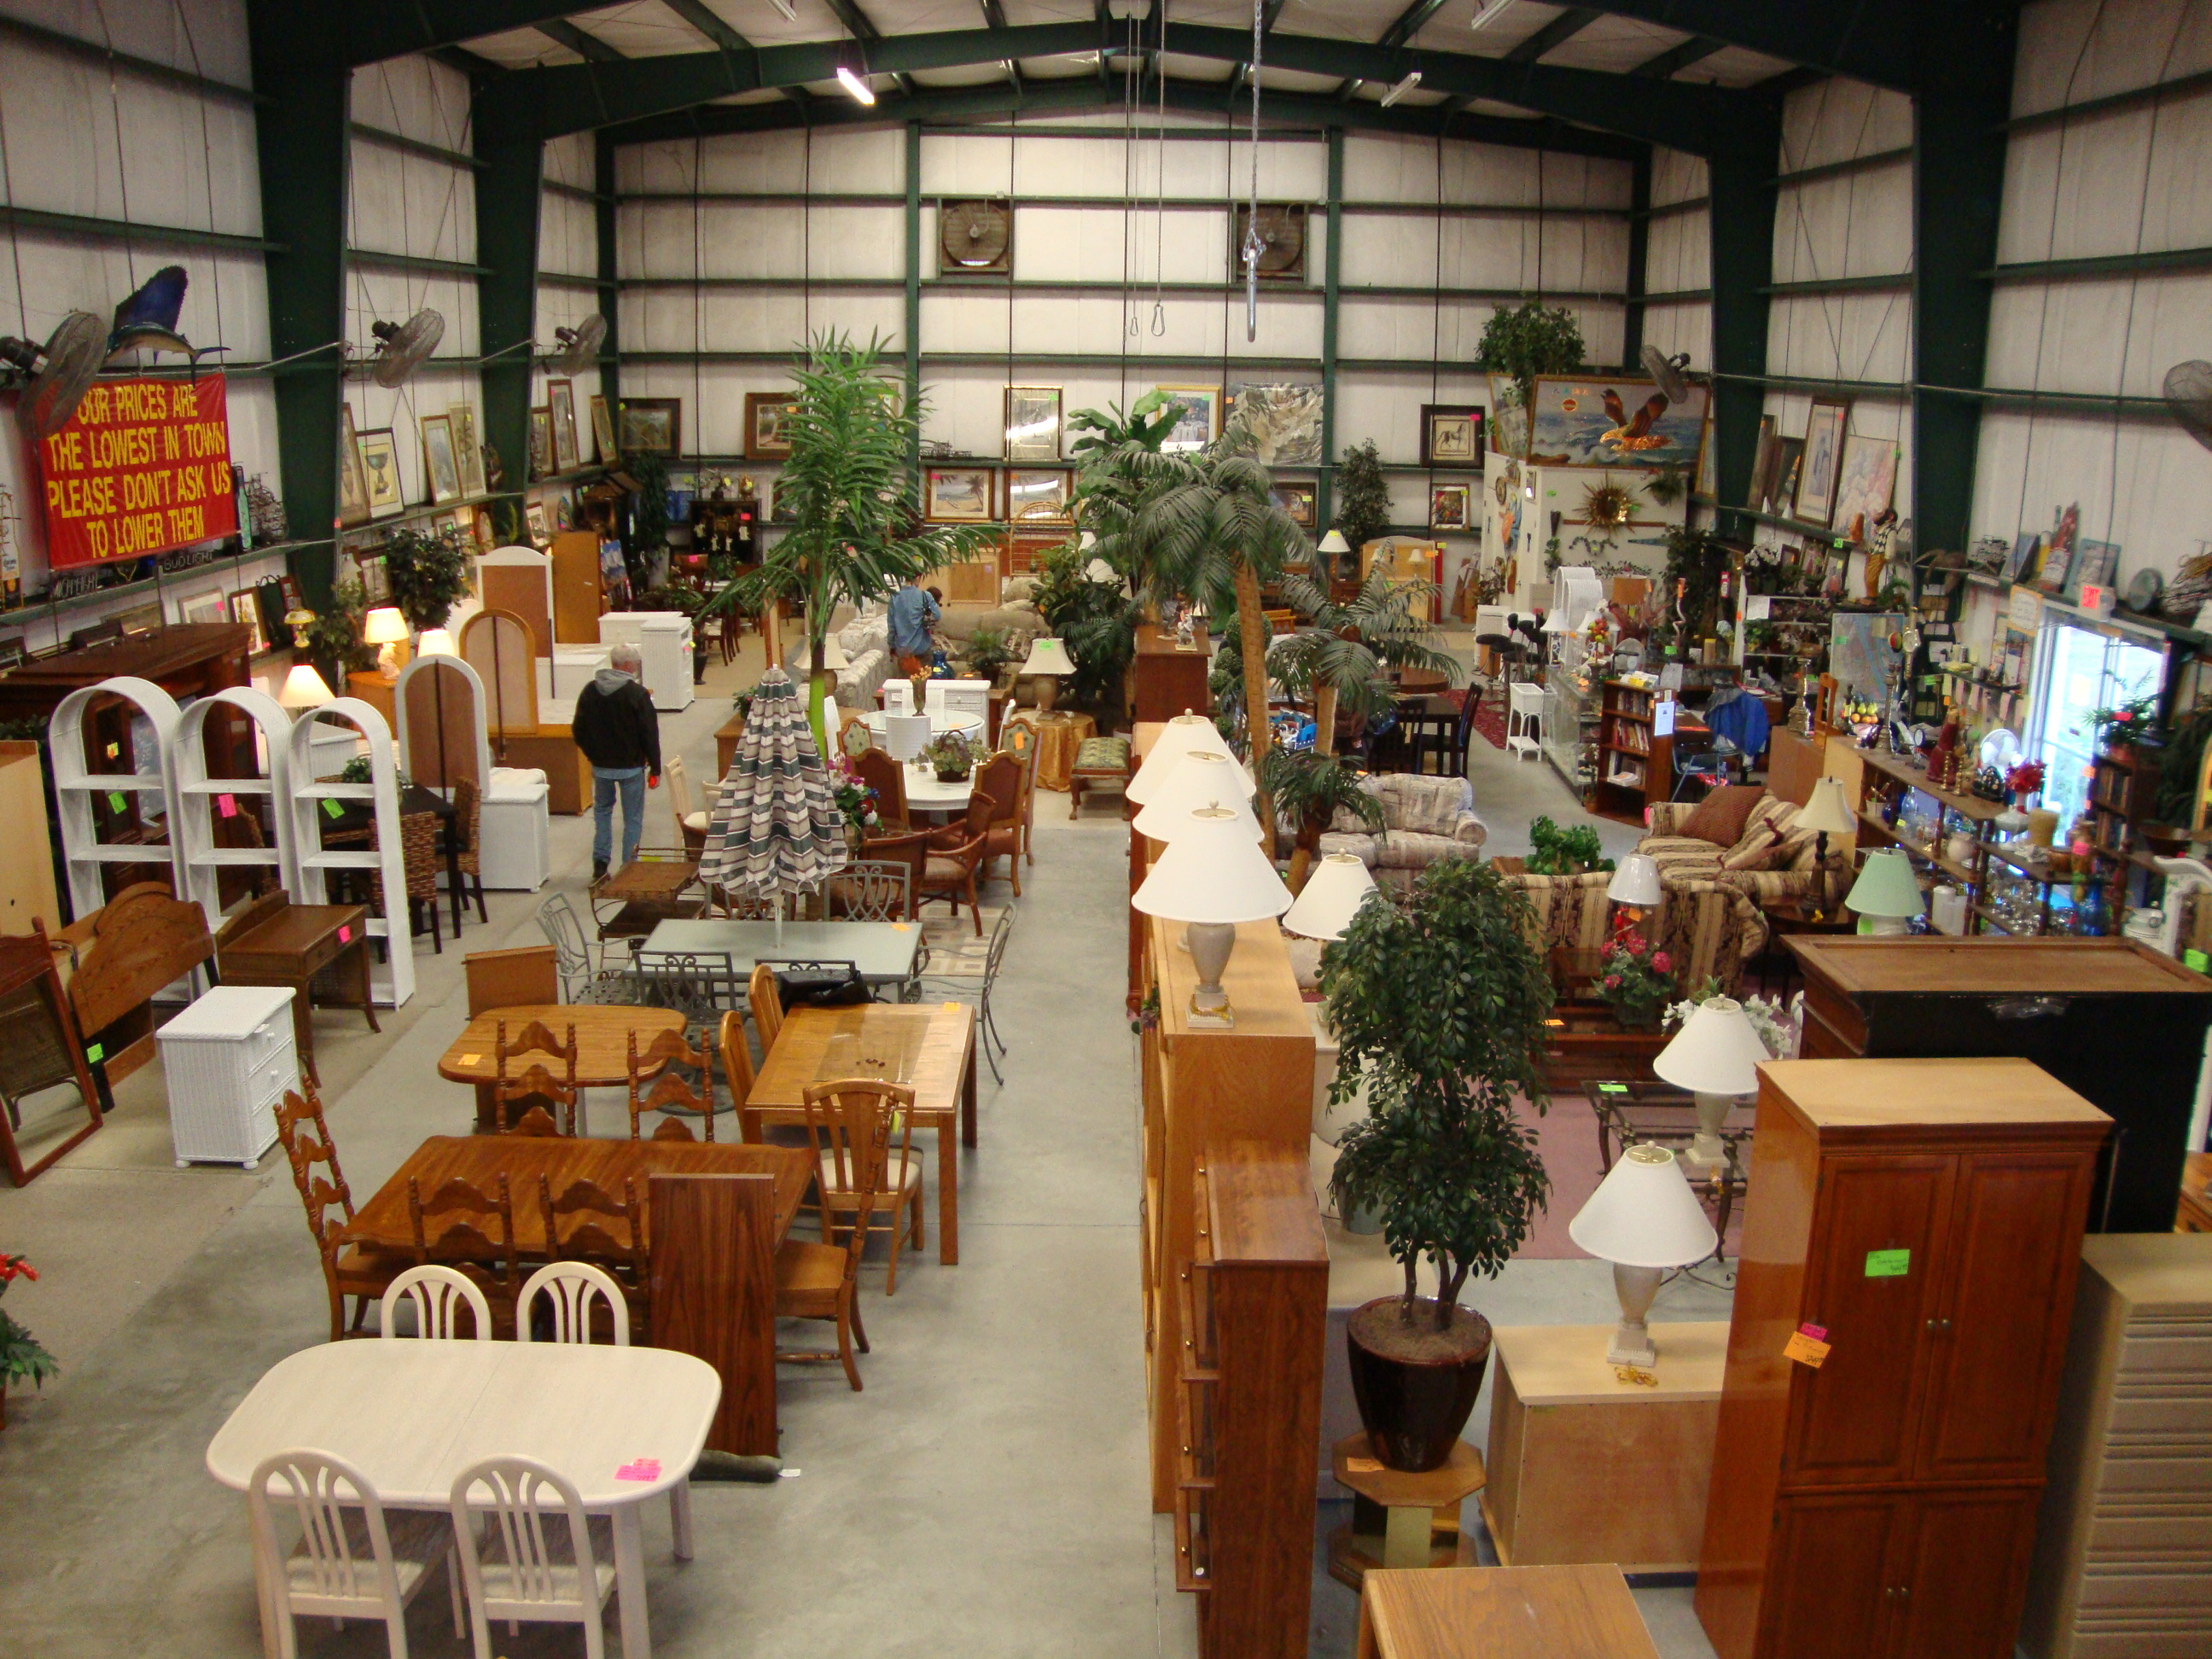 Westside used furniture warehouse 2140 meadowlane ave for Furniture consignment melbourne fl